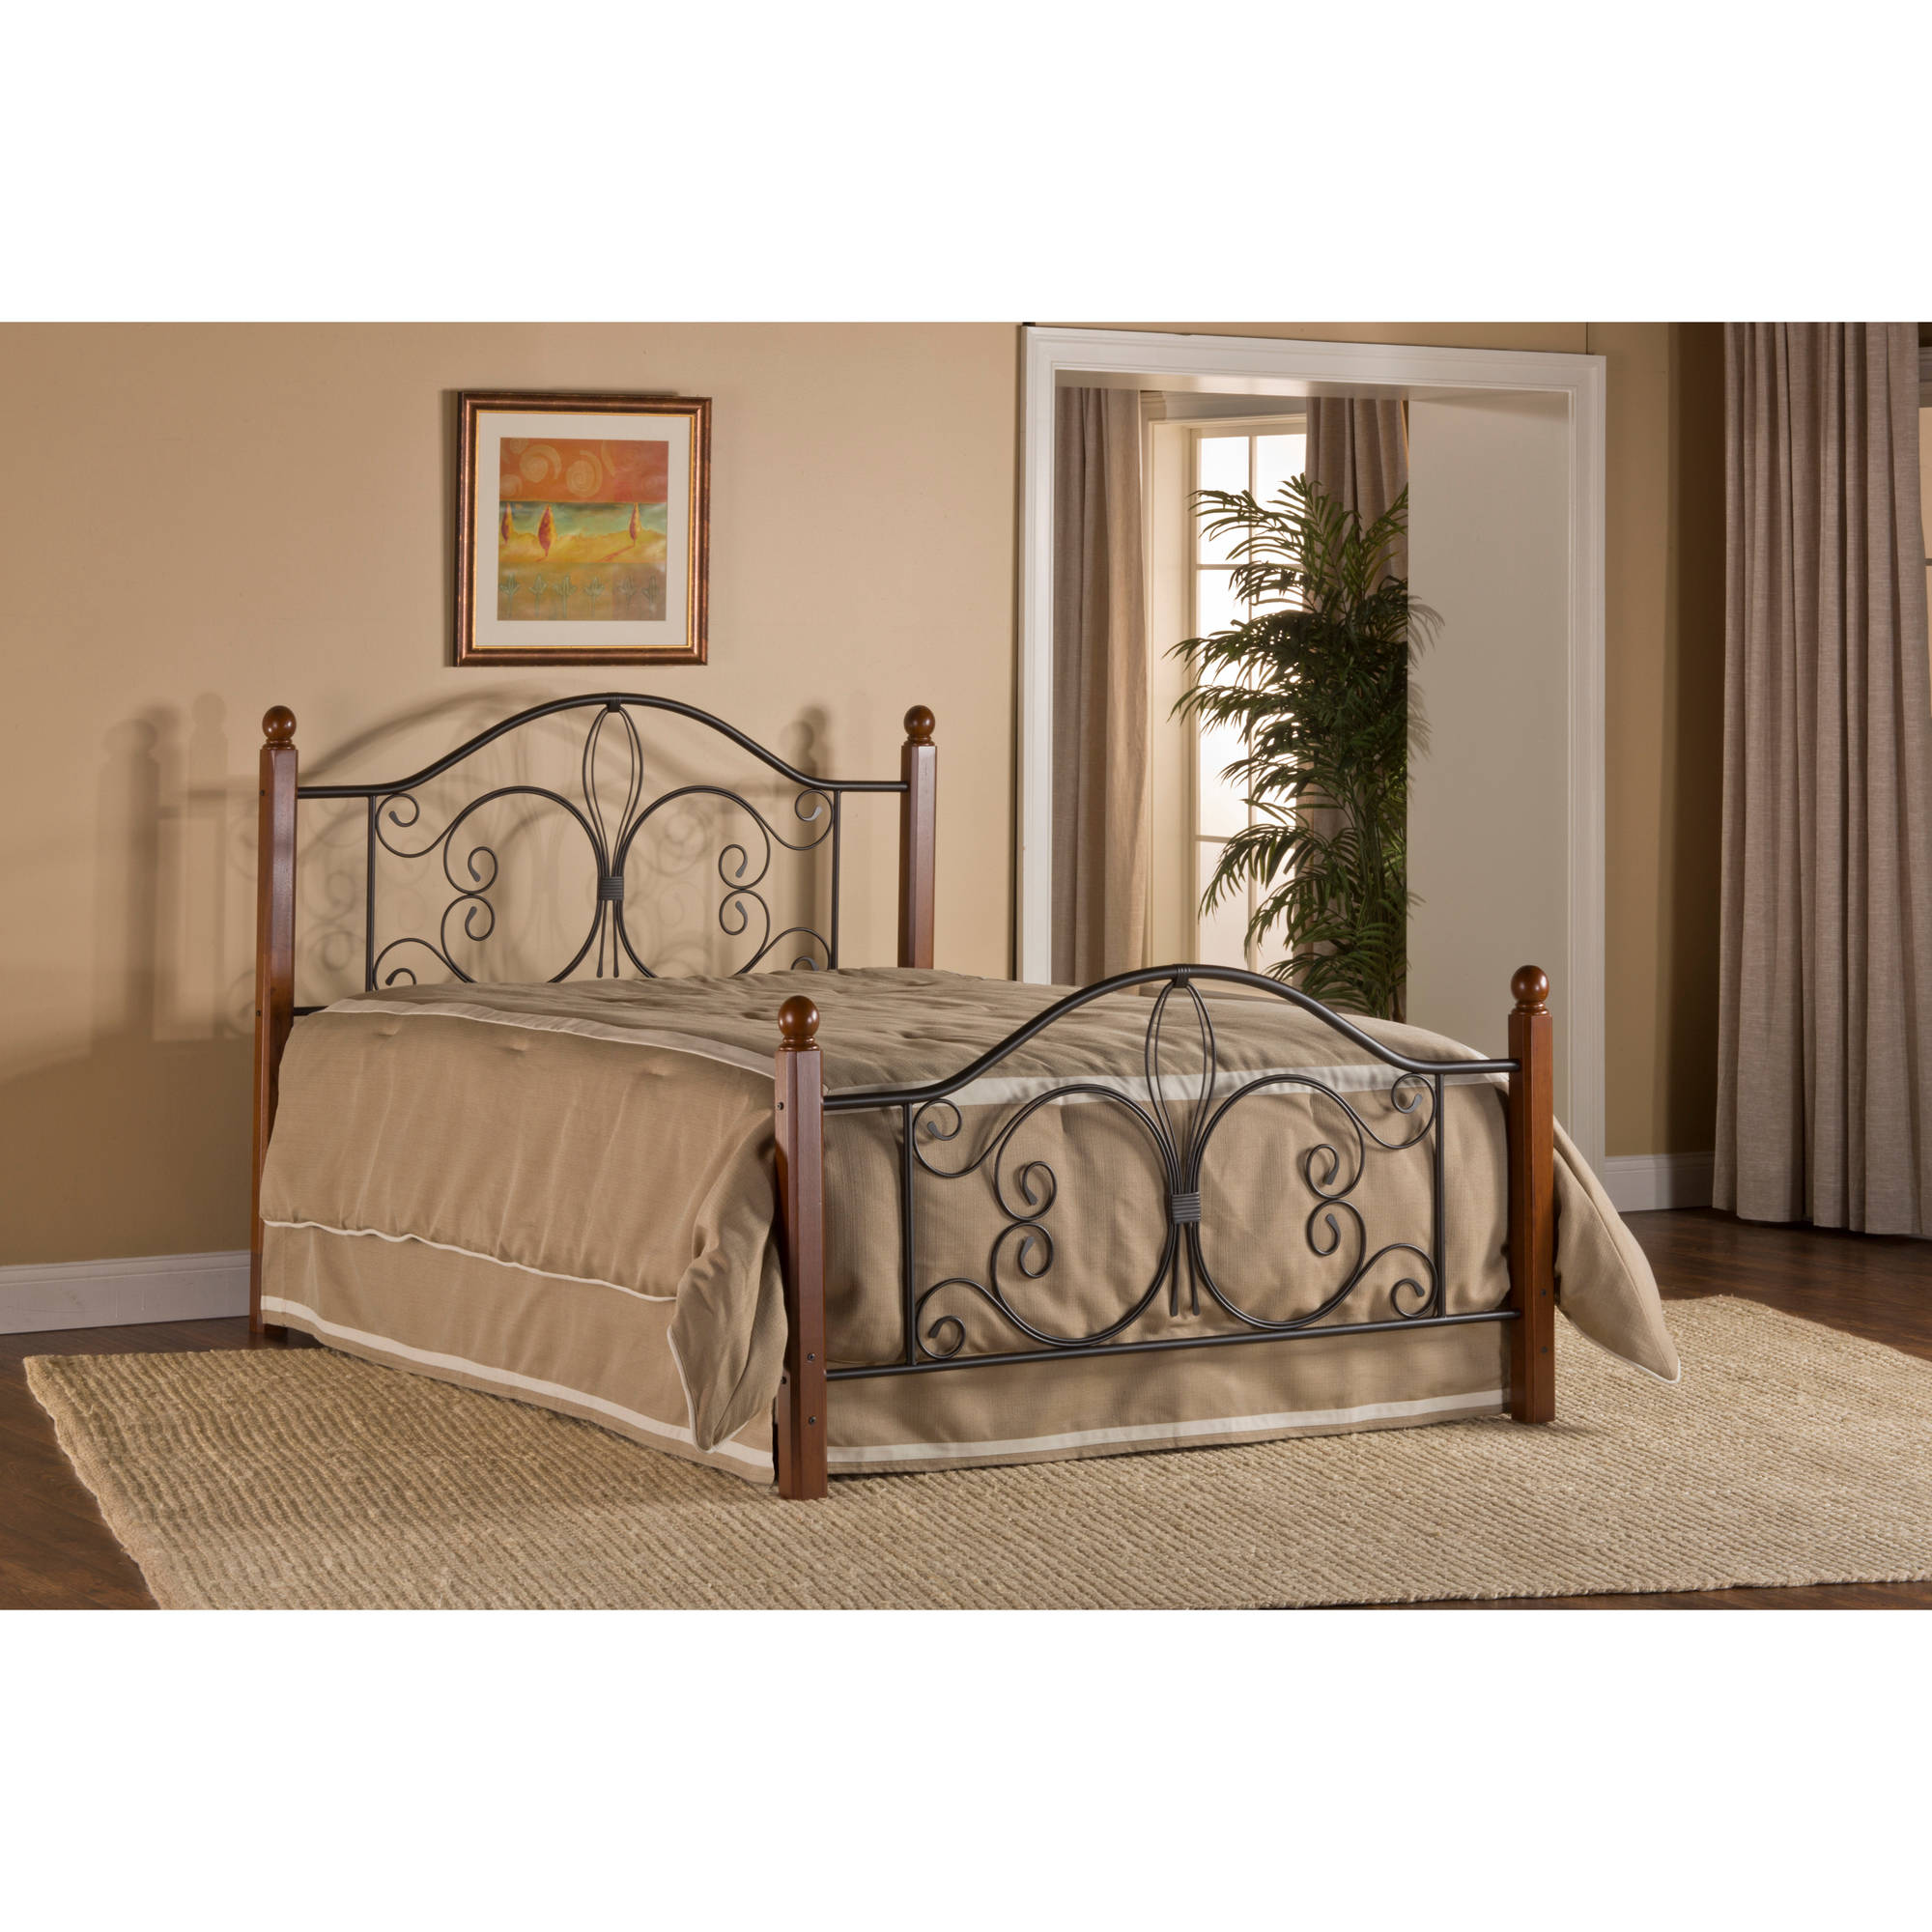 Hillsdale Furniture Milwaukee Wood Post Full Bed with Bedframe